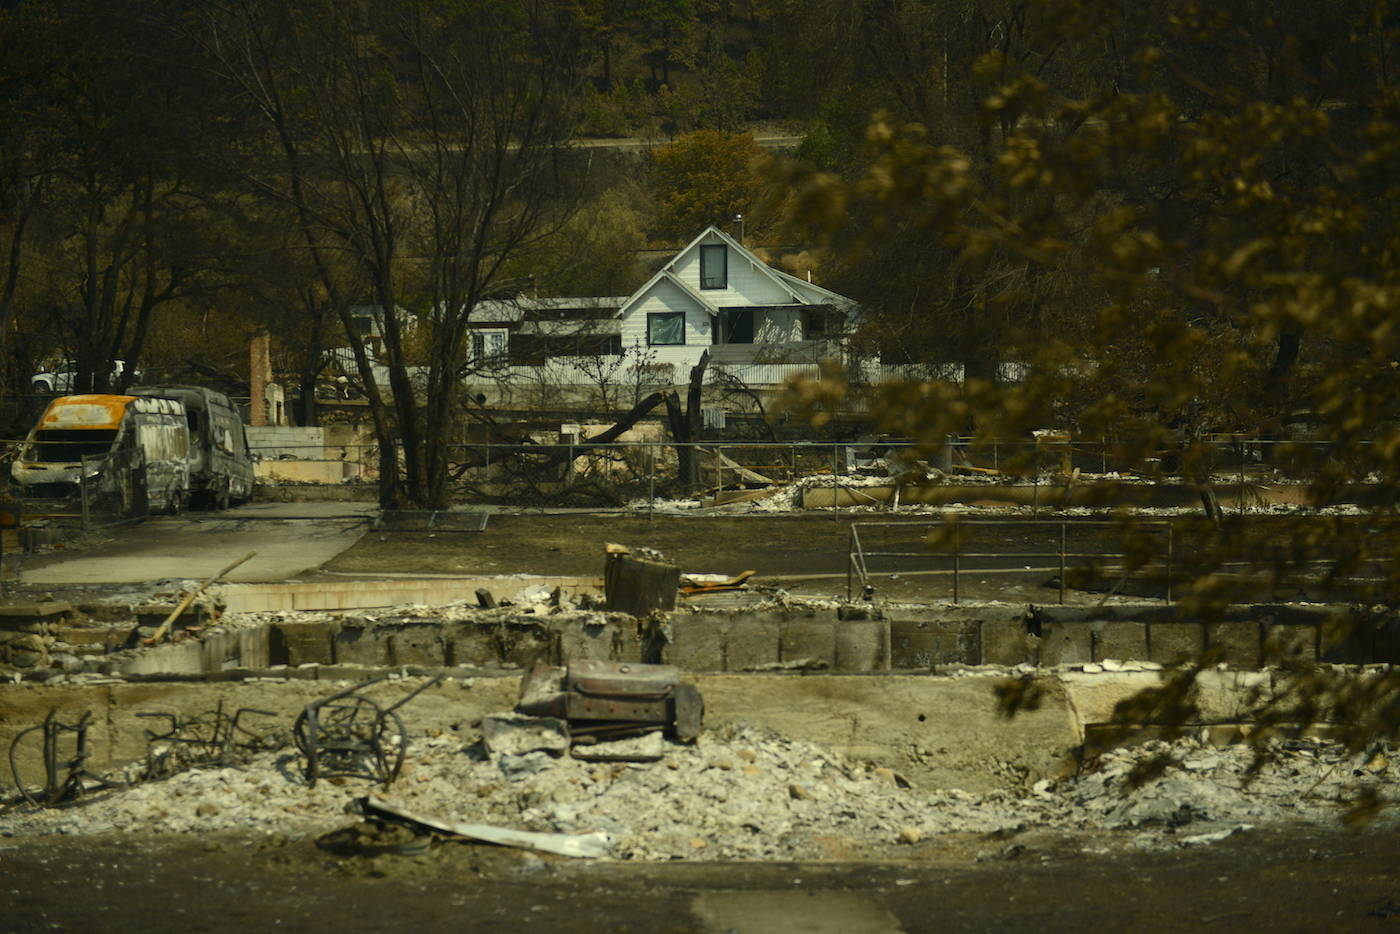 A house stands unscathed in Lytton, B.C. on Friday, July 9, 2021, nine days after a wildfire ripped through the village on June 30, 2021. (Jenna Hauck/ Black Press Media)